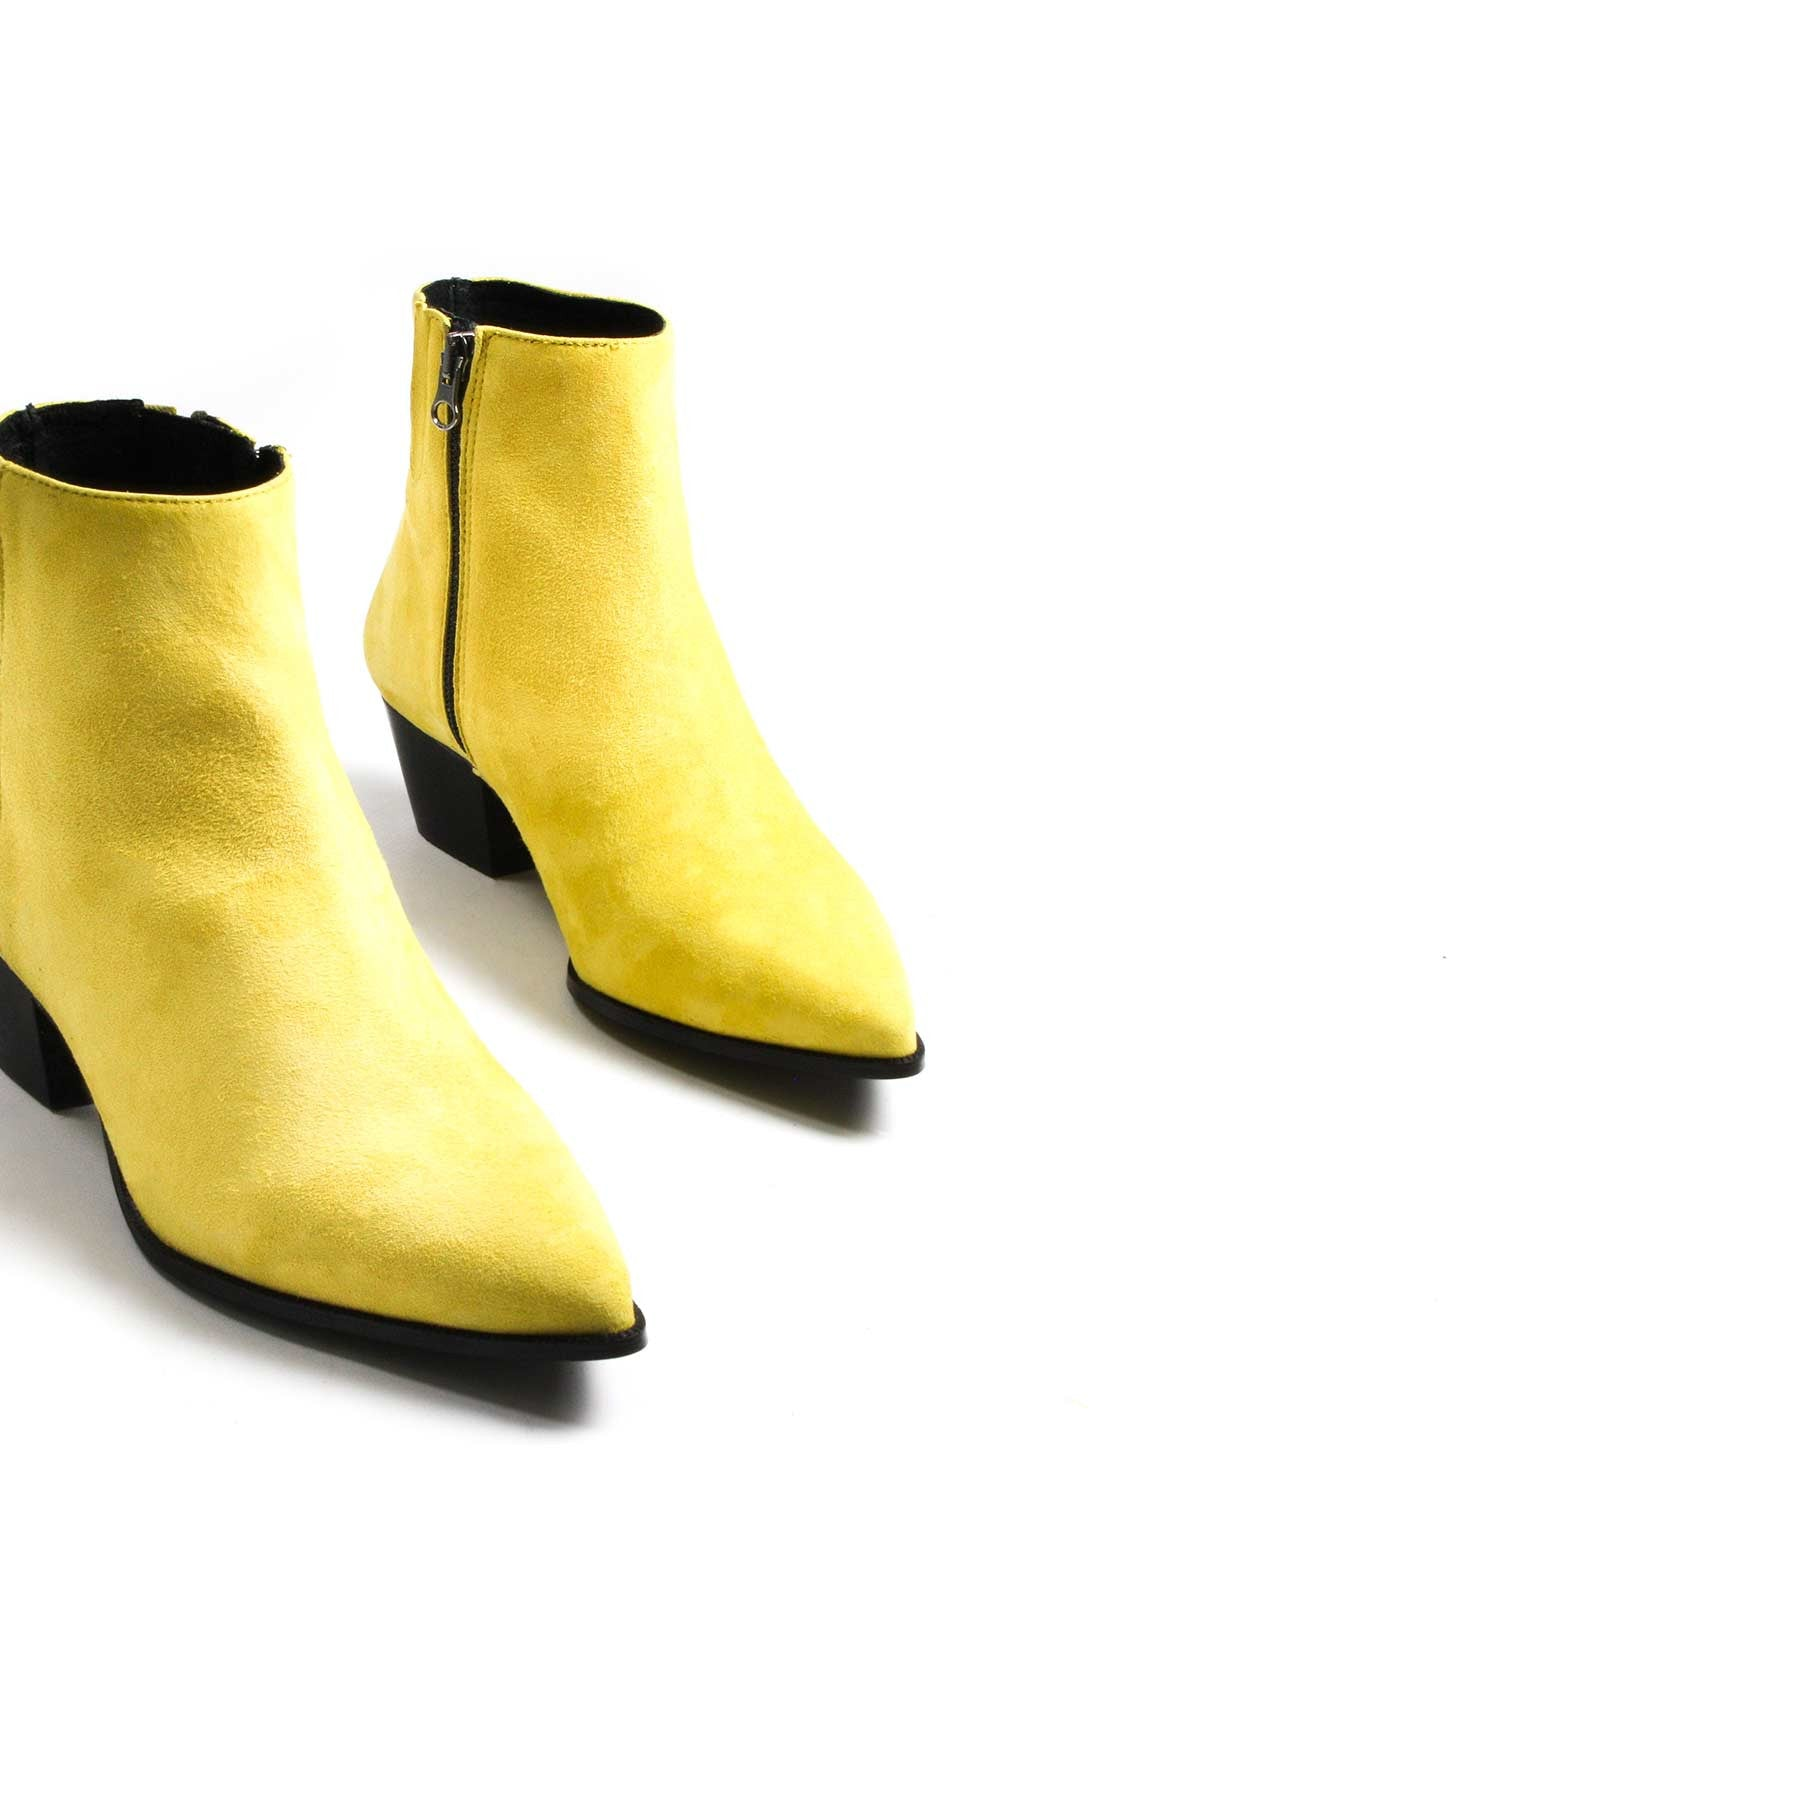 Boots, Bleecker Yellow Suede - Lintervalle shoes for woman